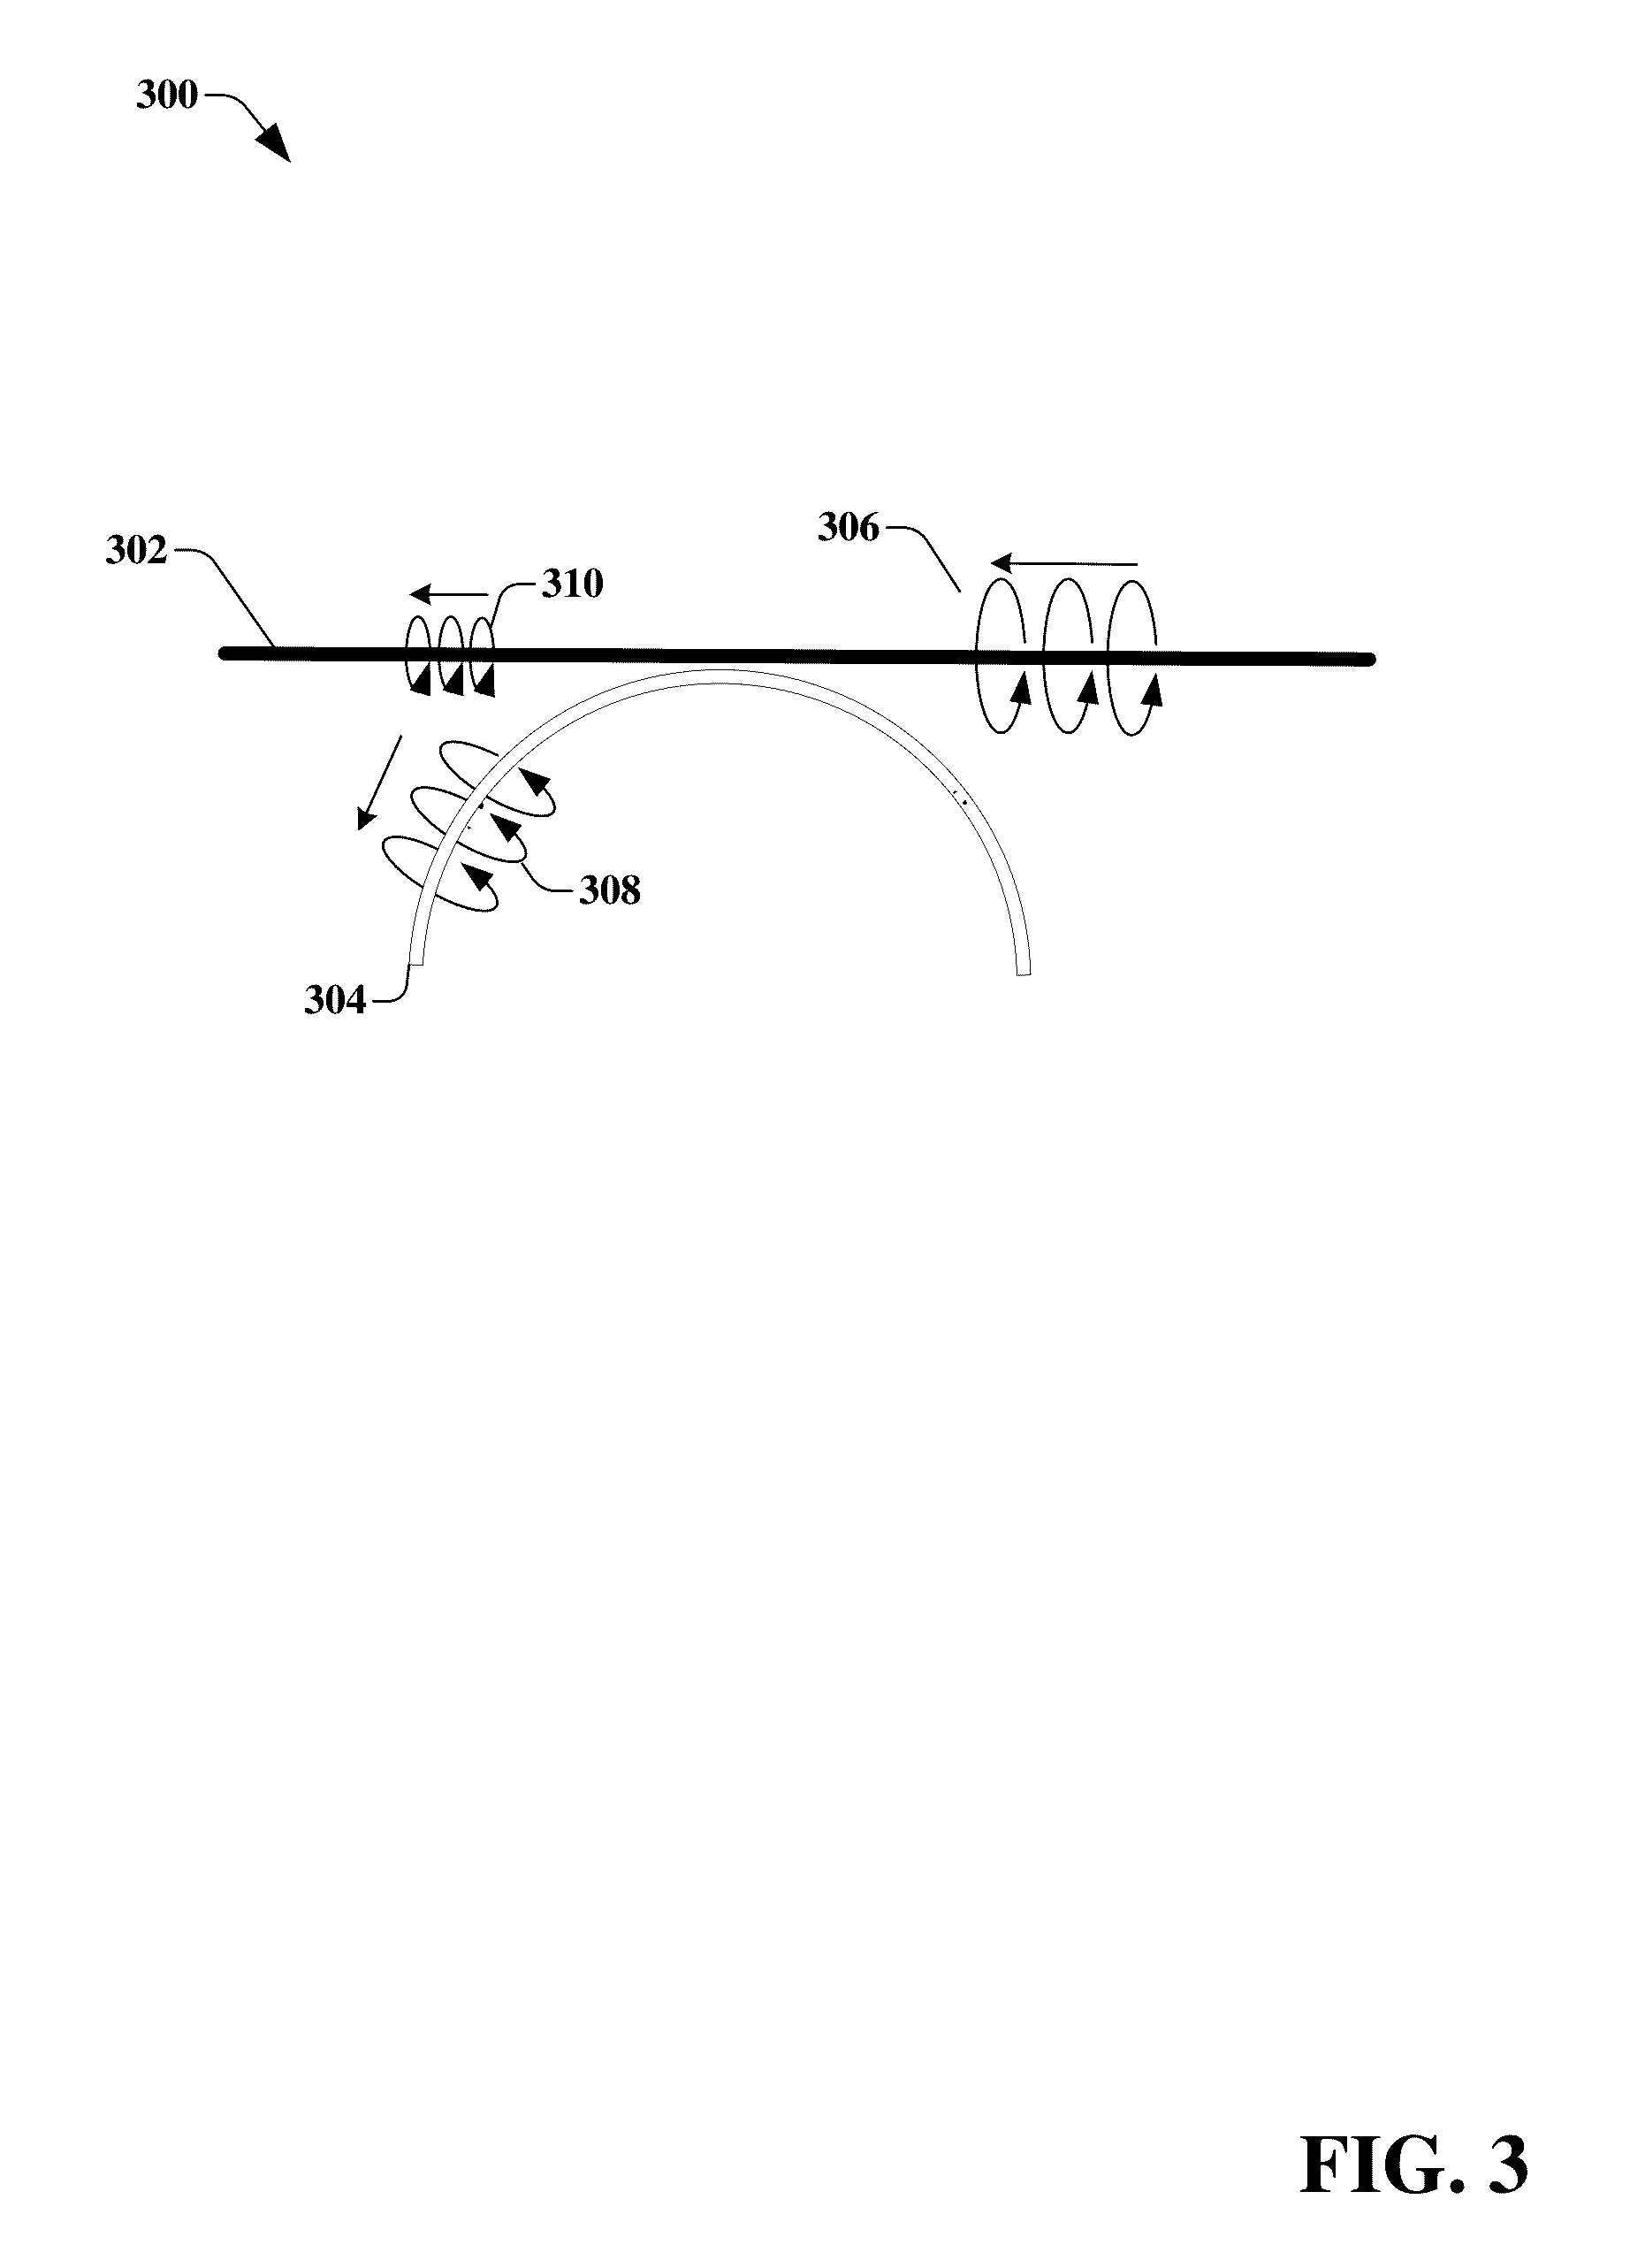 us9531427b2 transmission device with mode division multiplexing Corner Grounded Delta System Safety us9531427b2 transmission device with mode division multiplexing and methods for use therewith patents